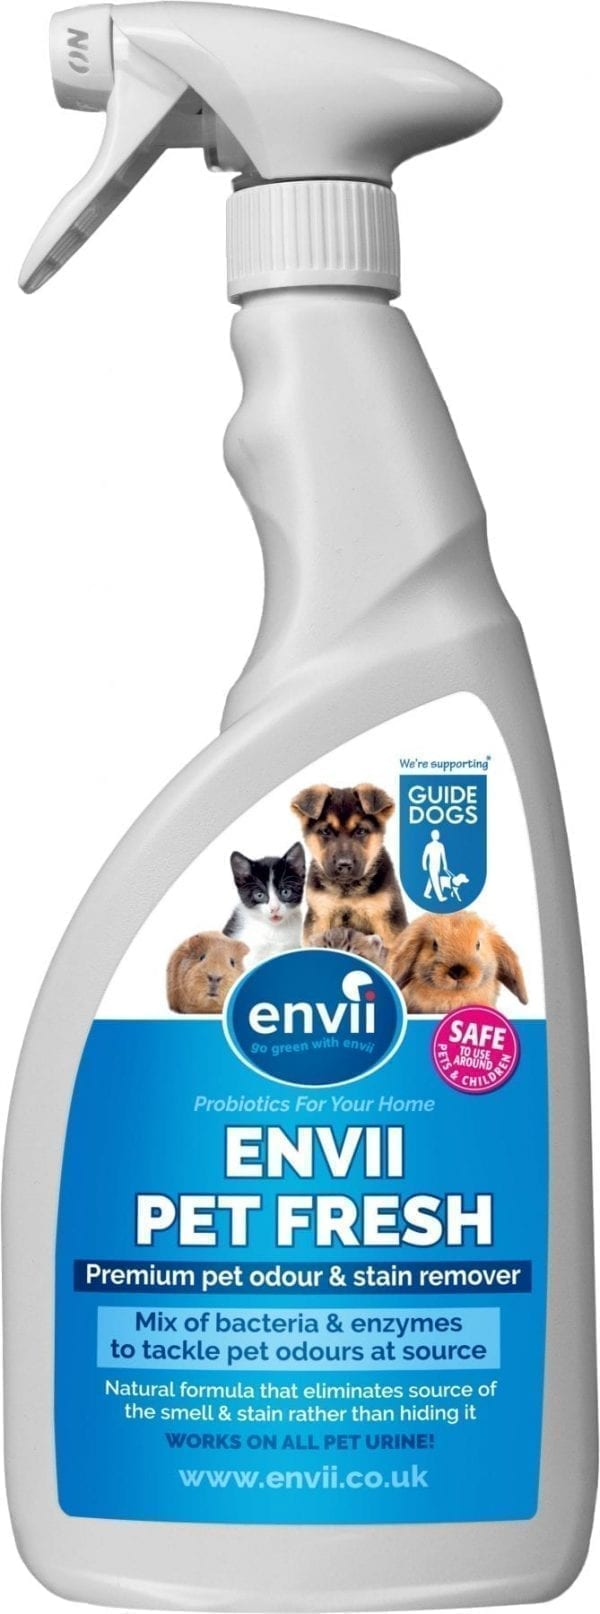 front view of Envii Pet Fresh bottle our pet urine cleaner